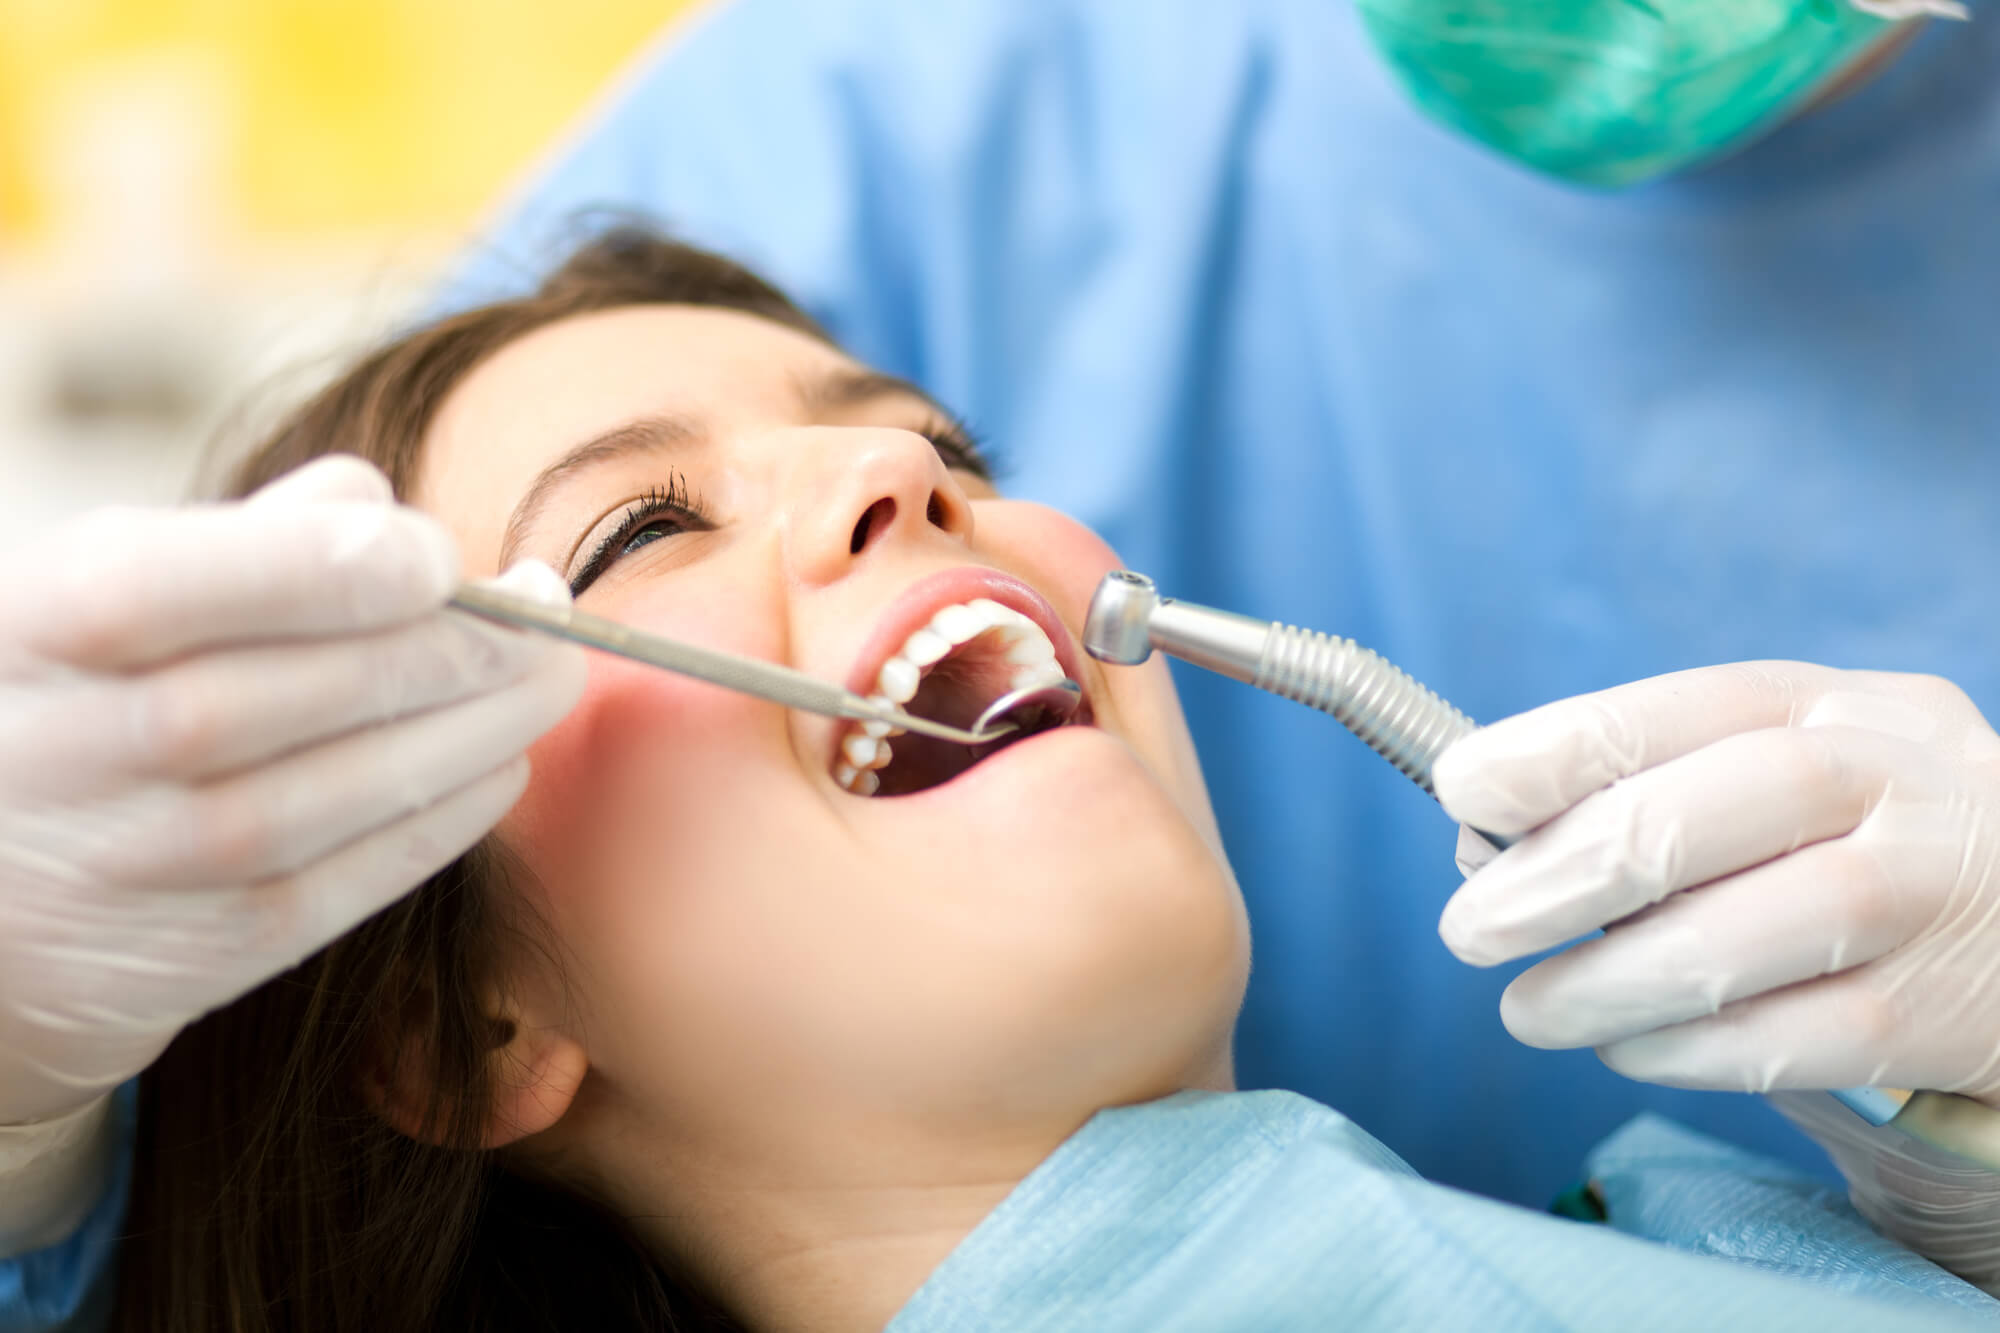 who offers oral surgery plantation?